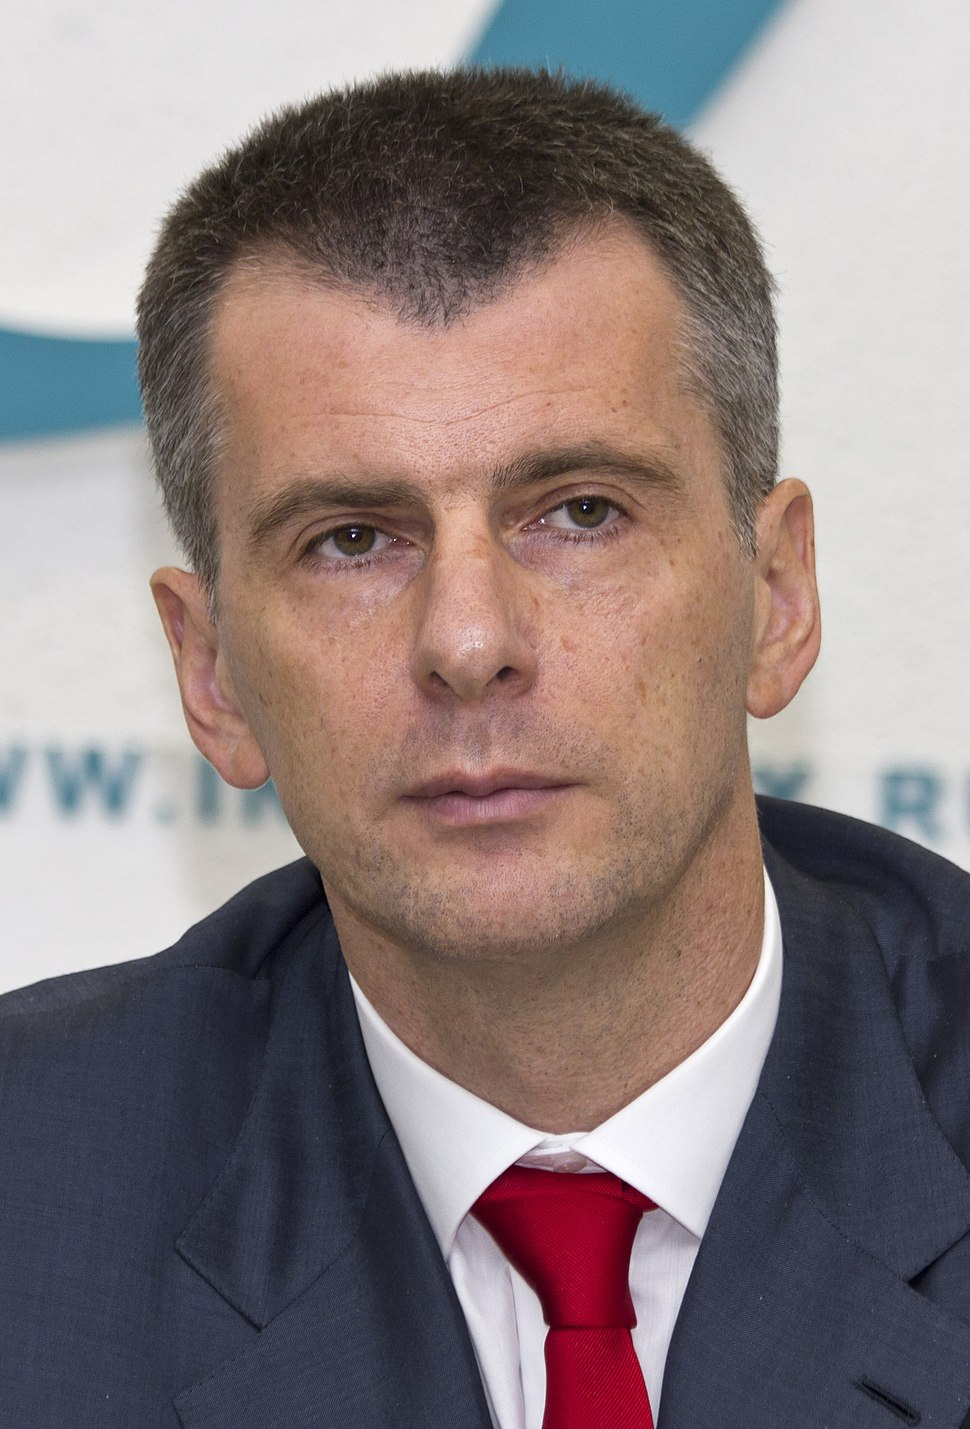 Mikhail Prokhorov IF 09-2013 (cropped)